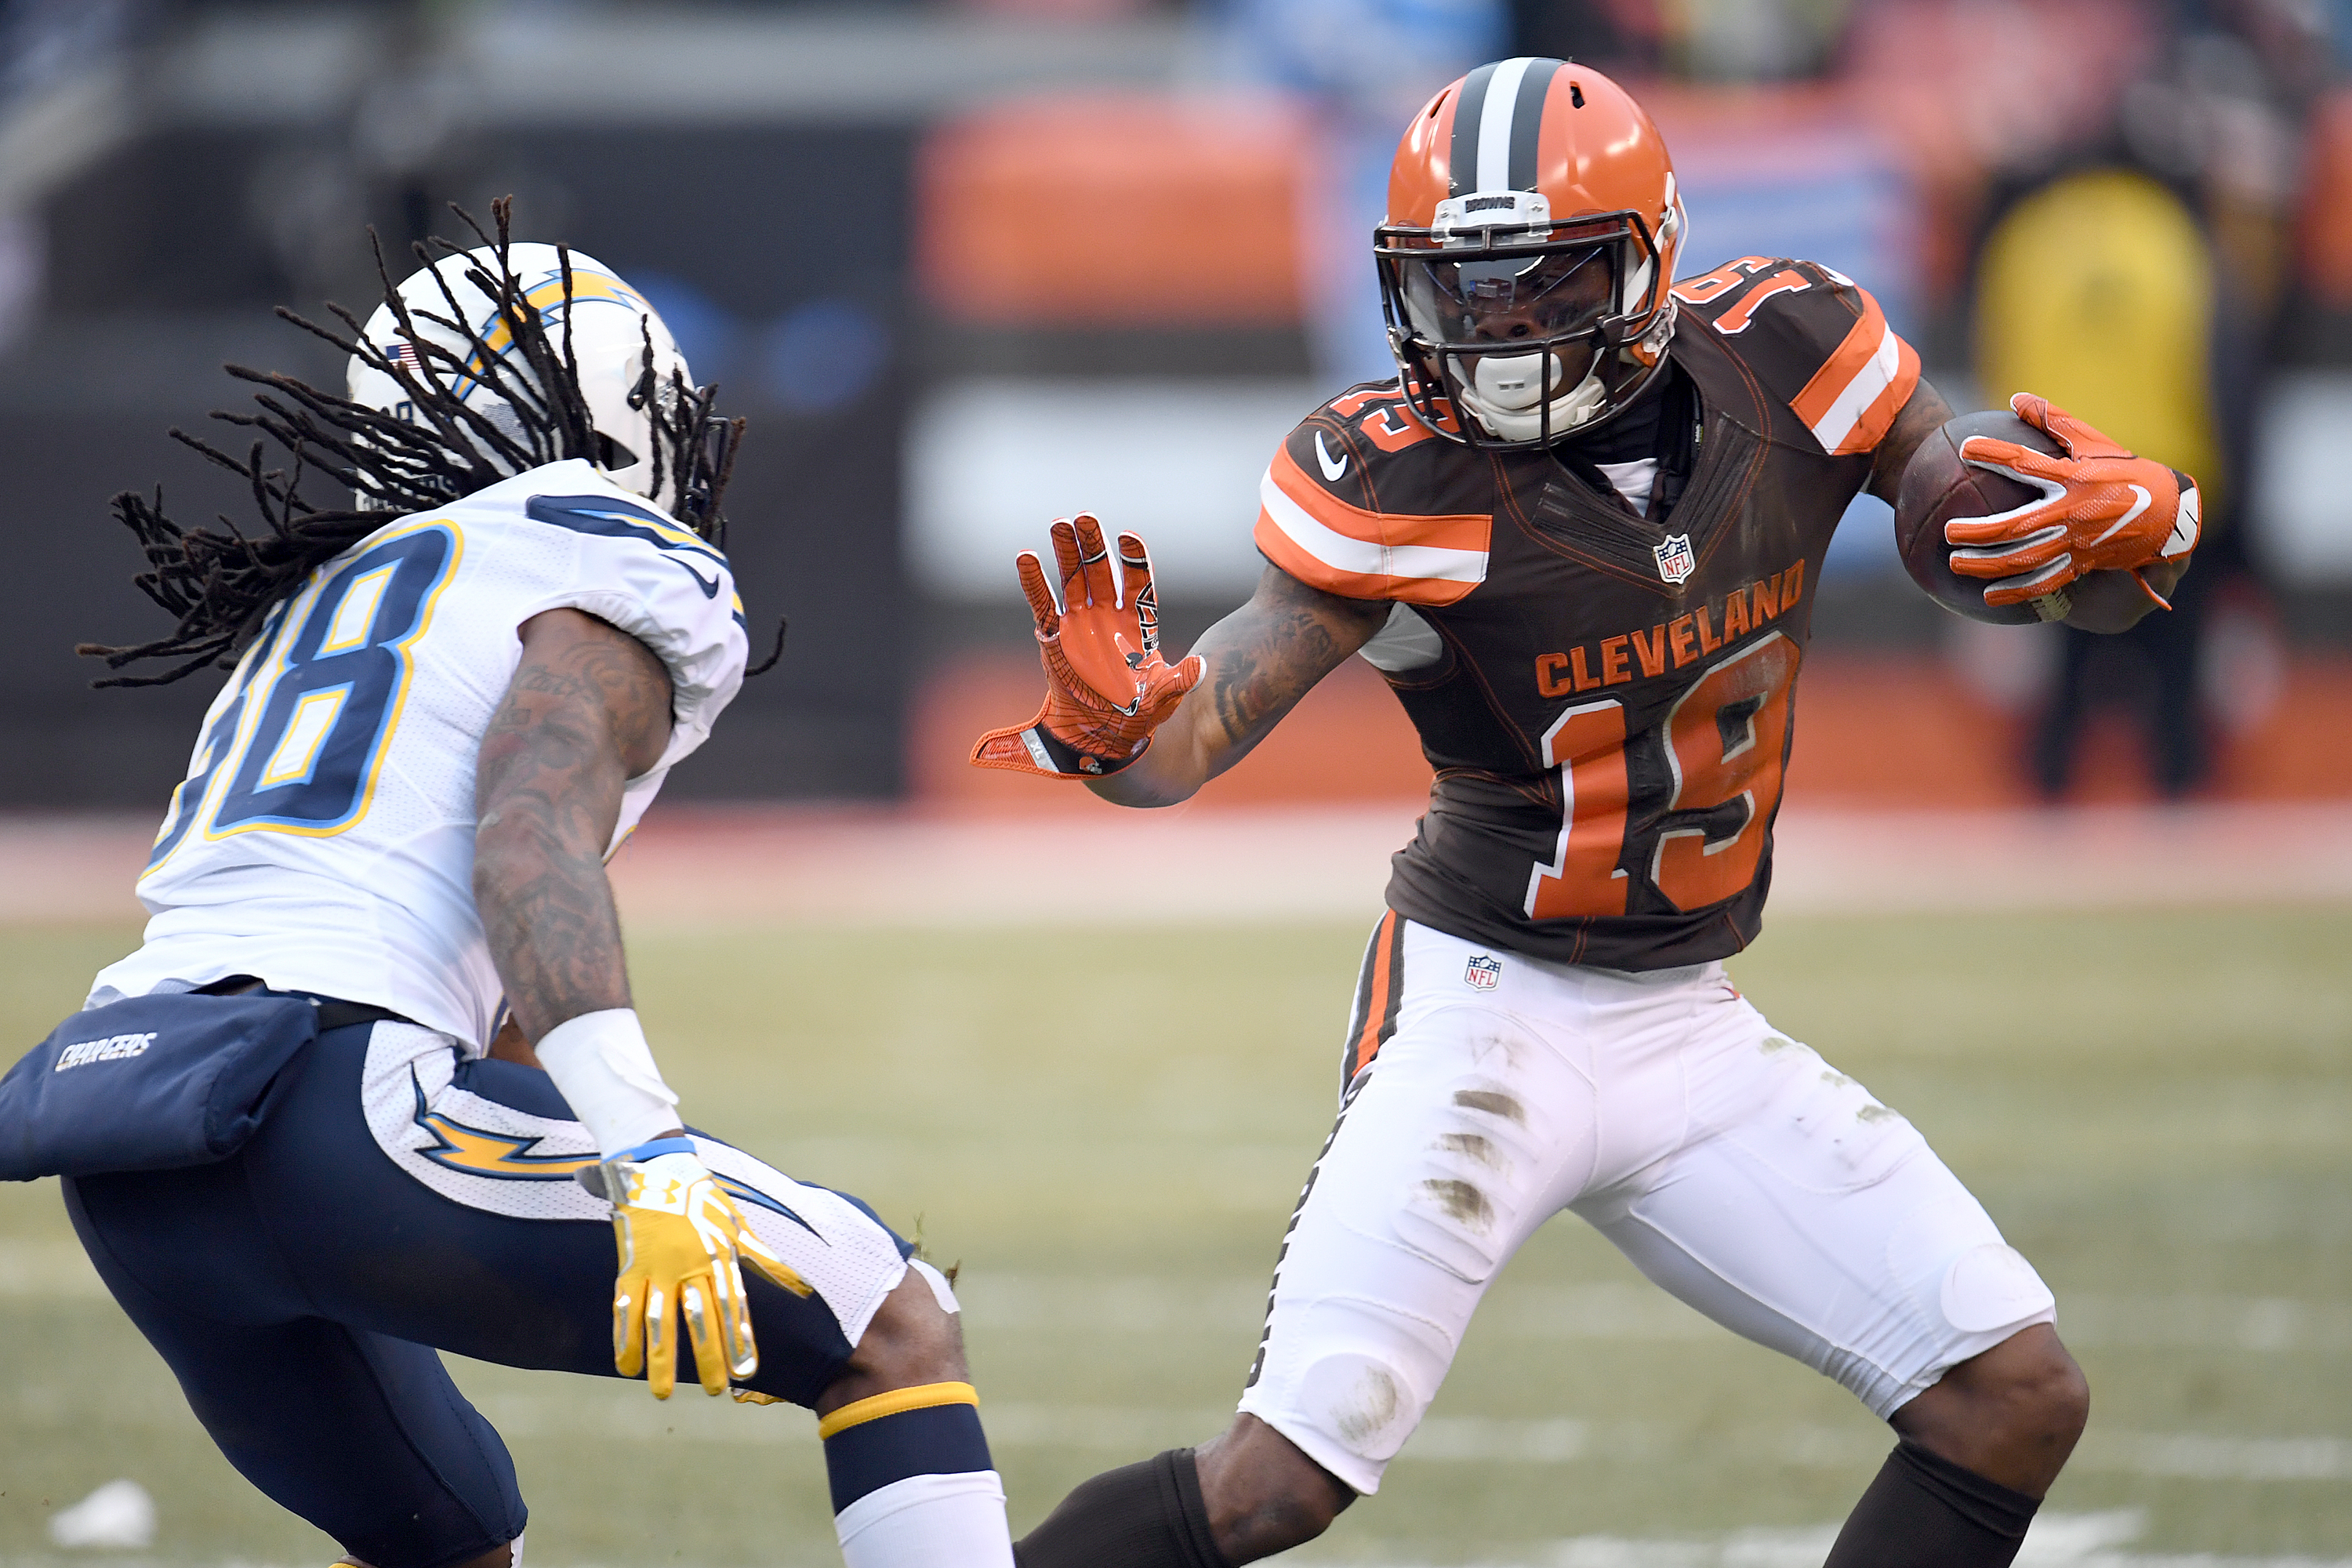 Cleveland Browns: Will free agency bring more excitement?